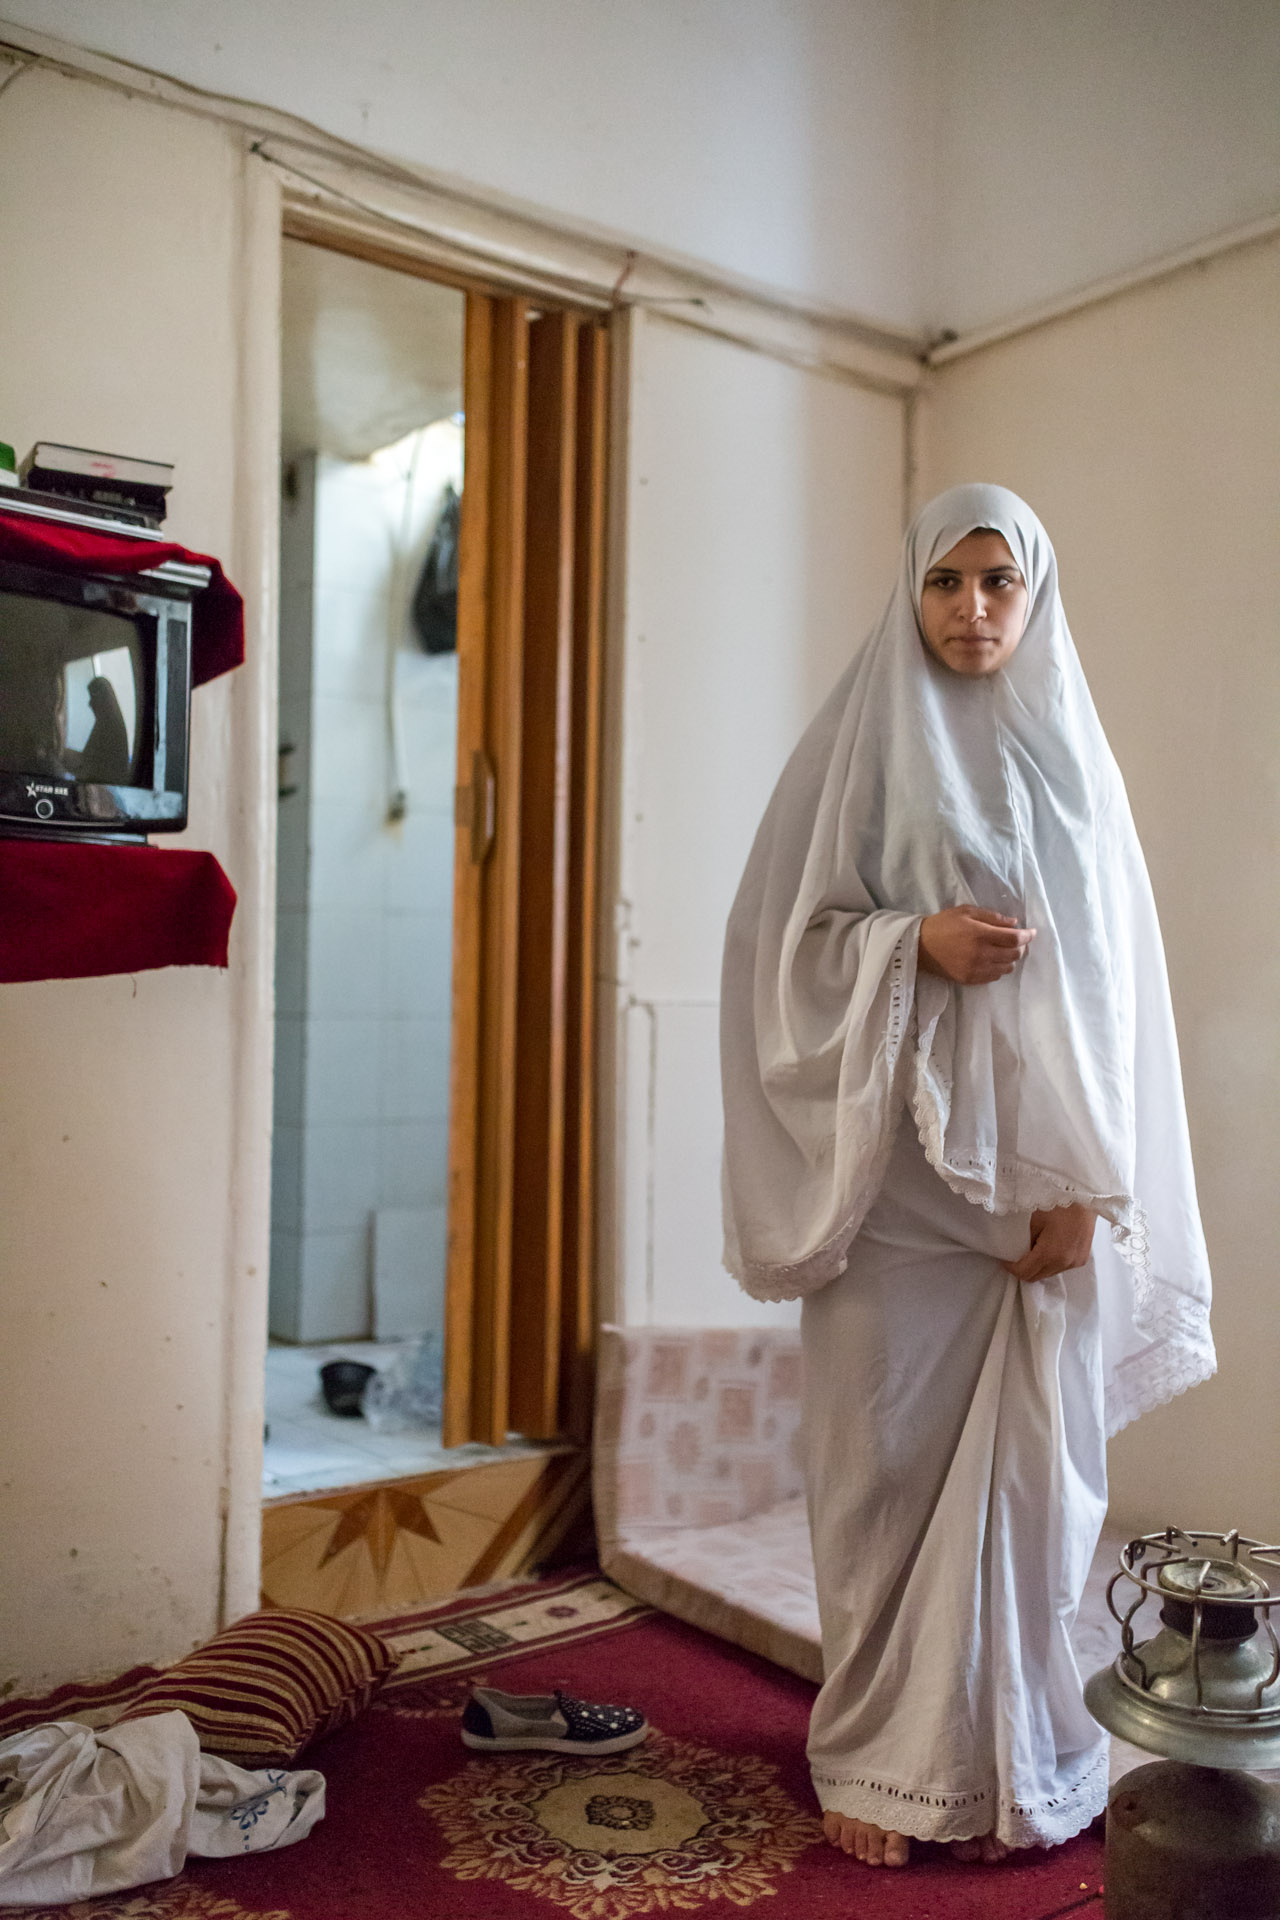 Ada who comes from Damascus, feels sick since two months and can't see a doctor. She has just washed the few clothes she could bring , and wears her prayer gown until the garments are dry.